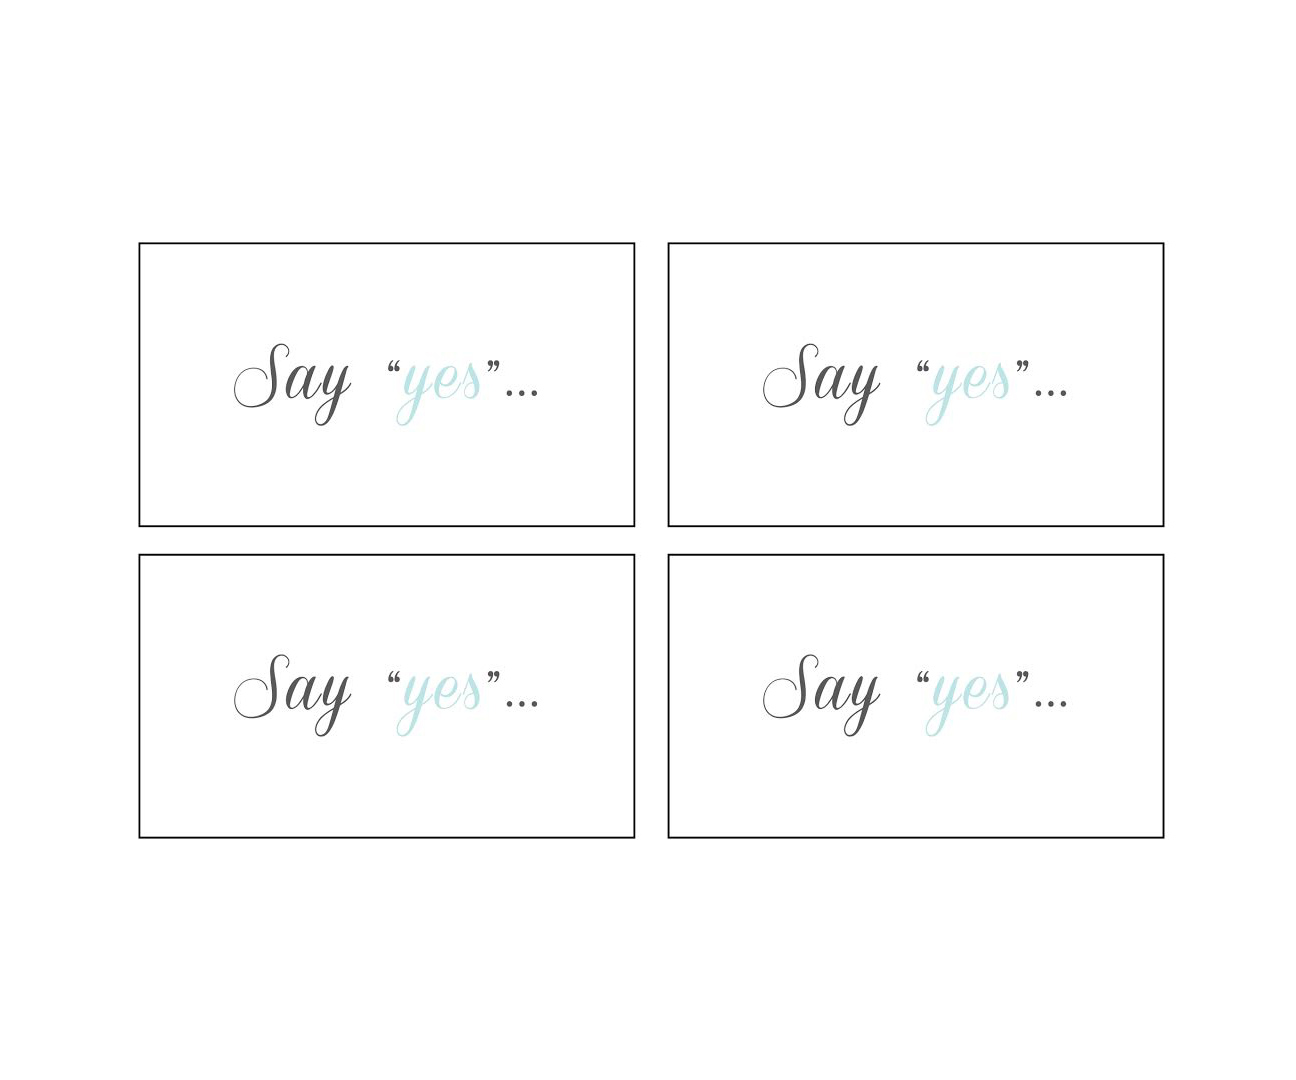 ExecutiveHotels_Wedding_BusinessCard2.jpg